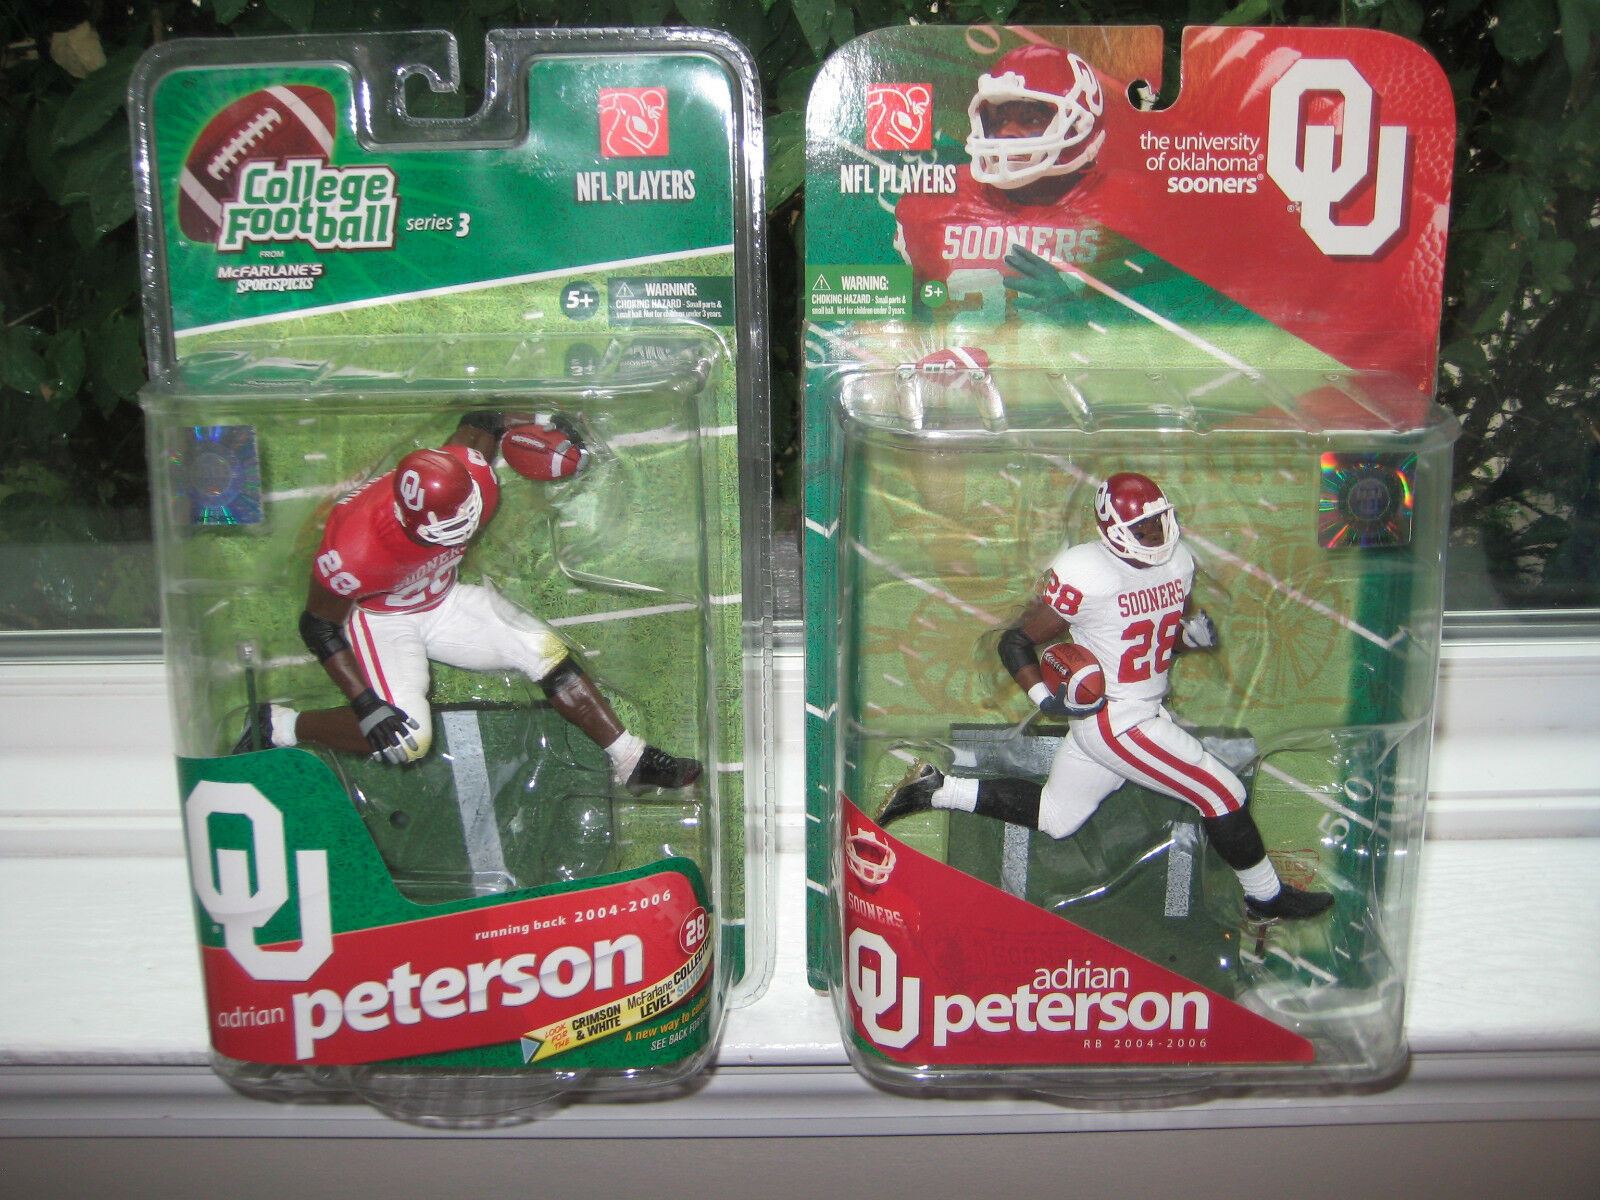 MCFARLANE NCAA 1 & 3 ADRIAN PETERSON COLLECTOR LEVEL CHASE VARIANT  574750 LOT